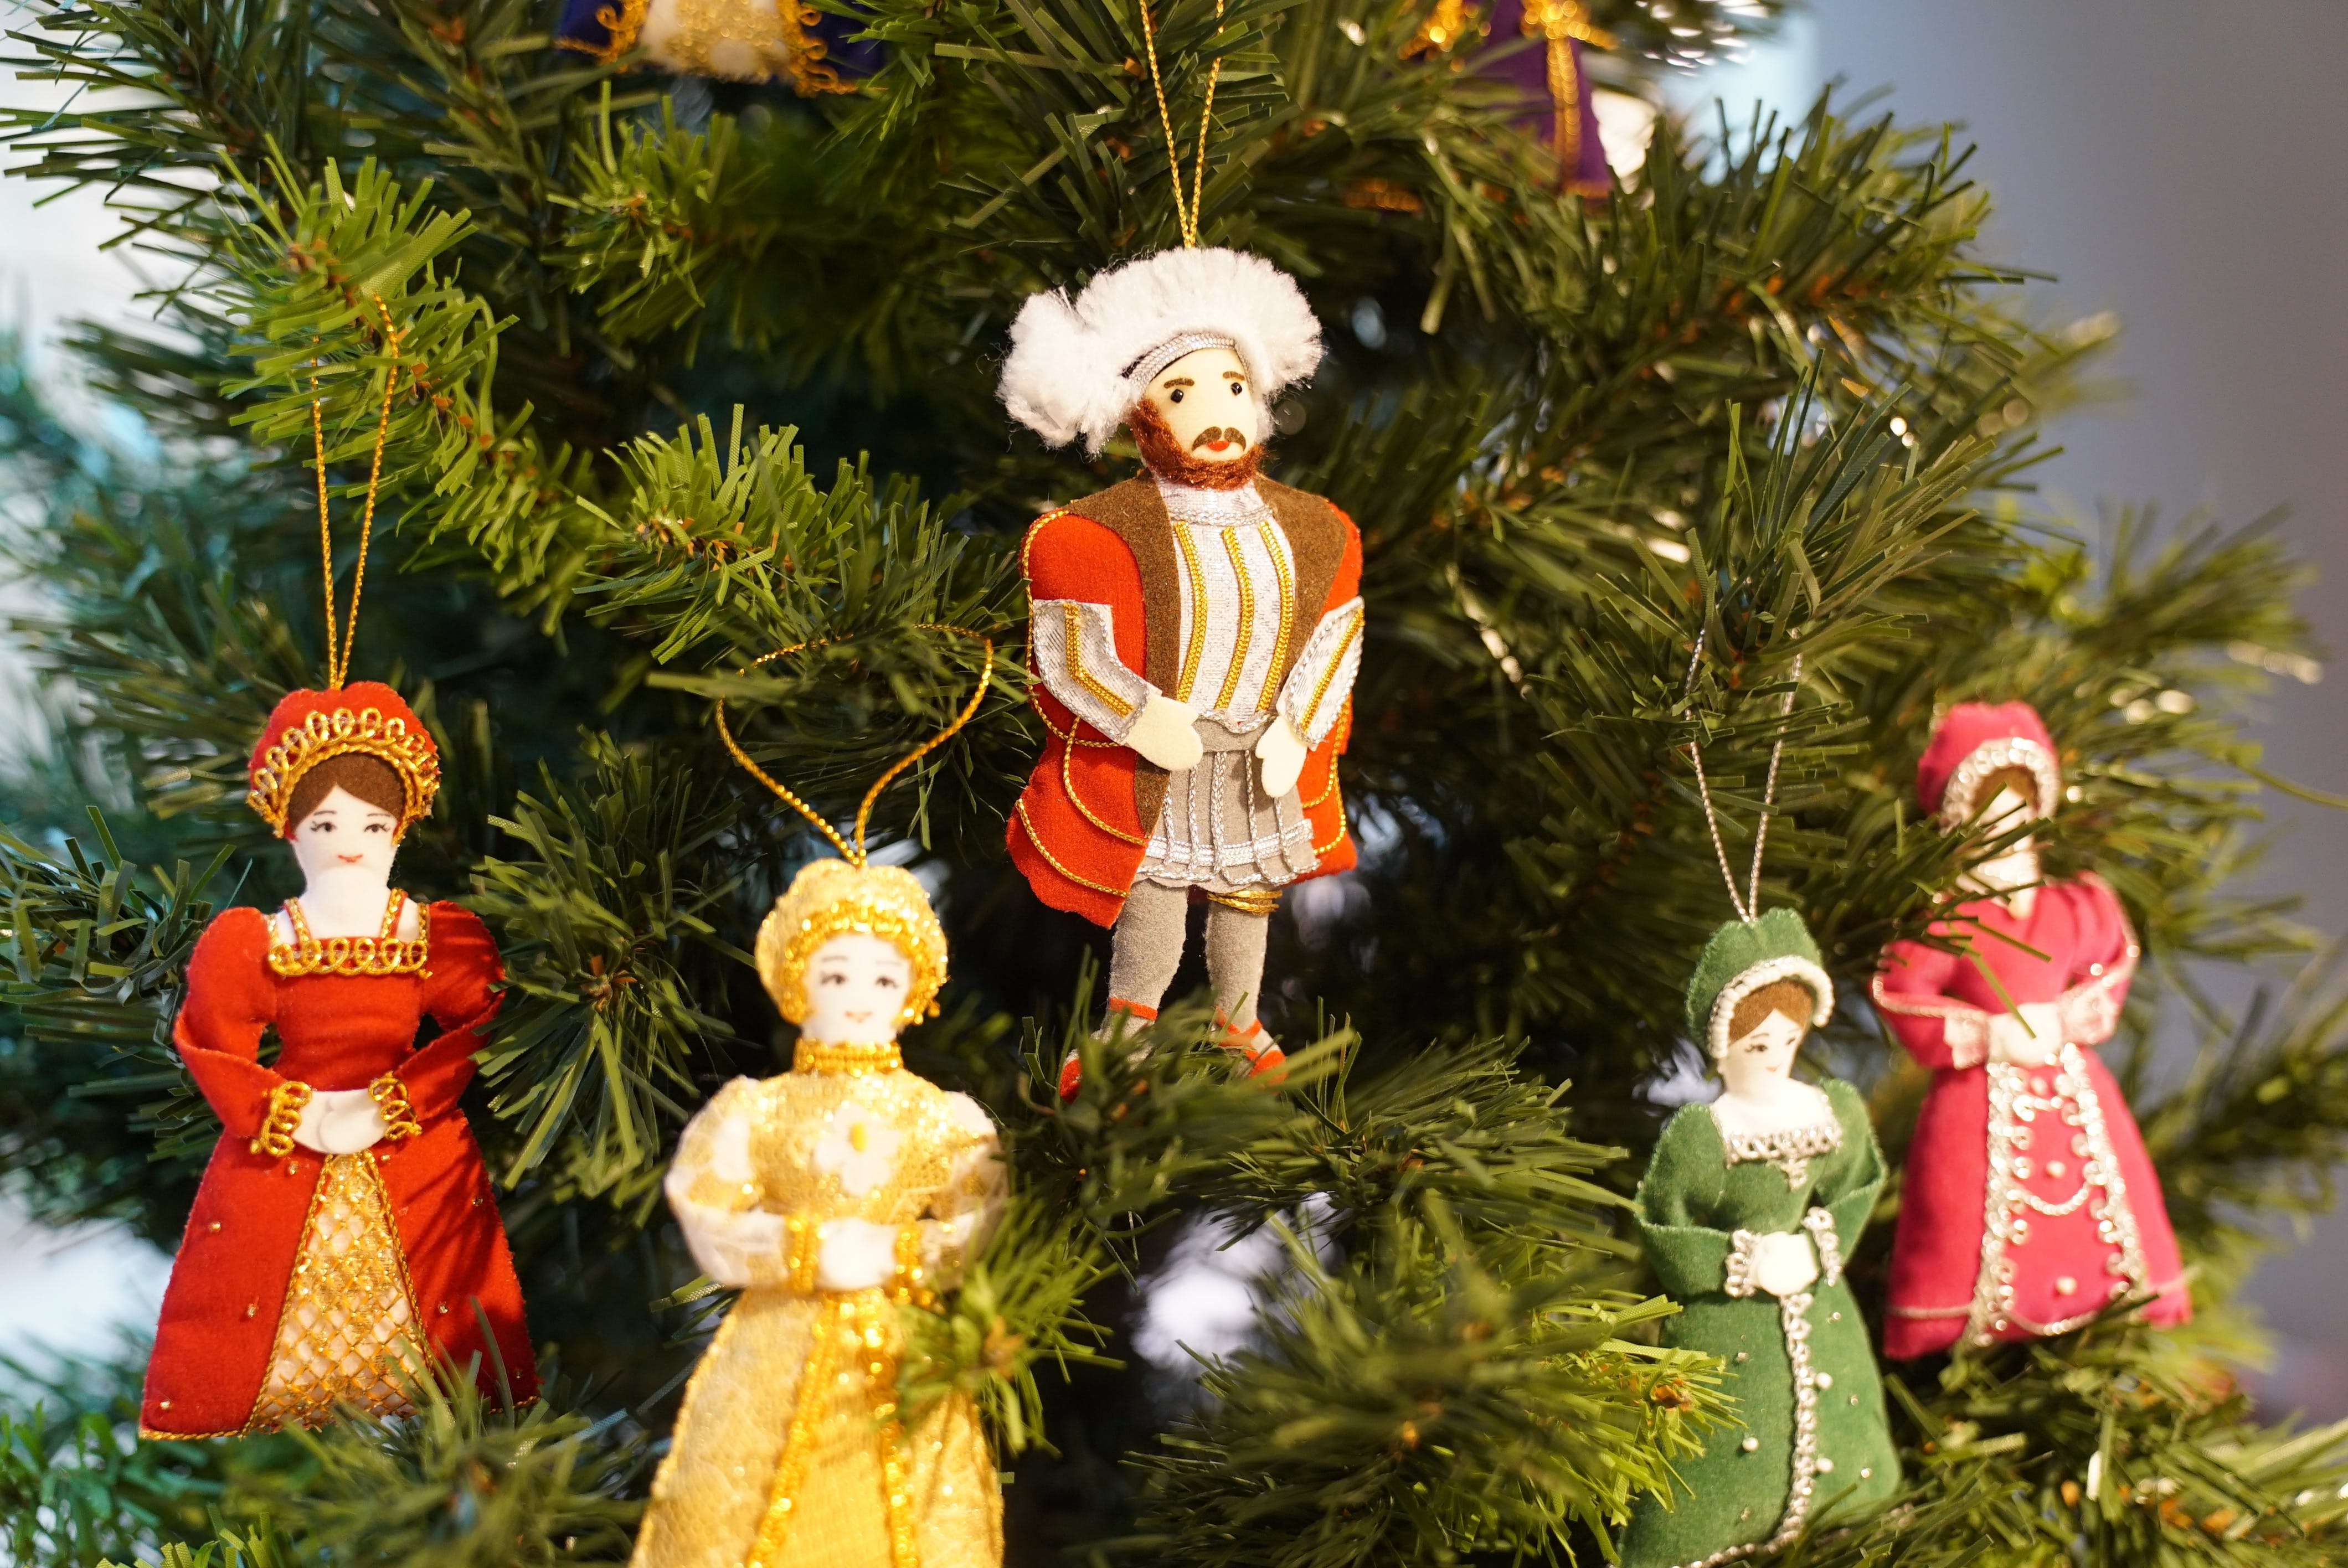 A selection of Christmas tree figure decorations including Henry VIII hanging on a Christmas tree.